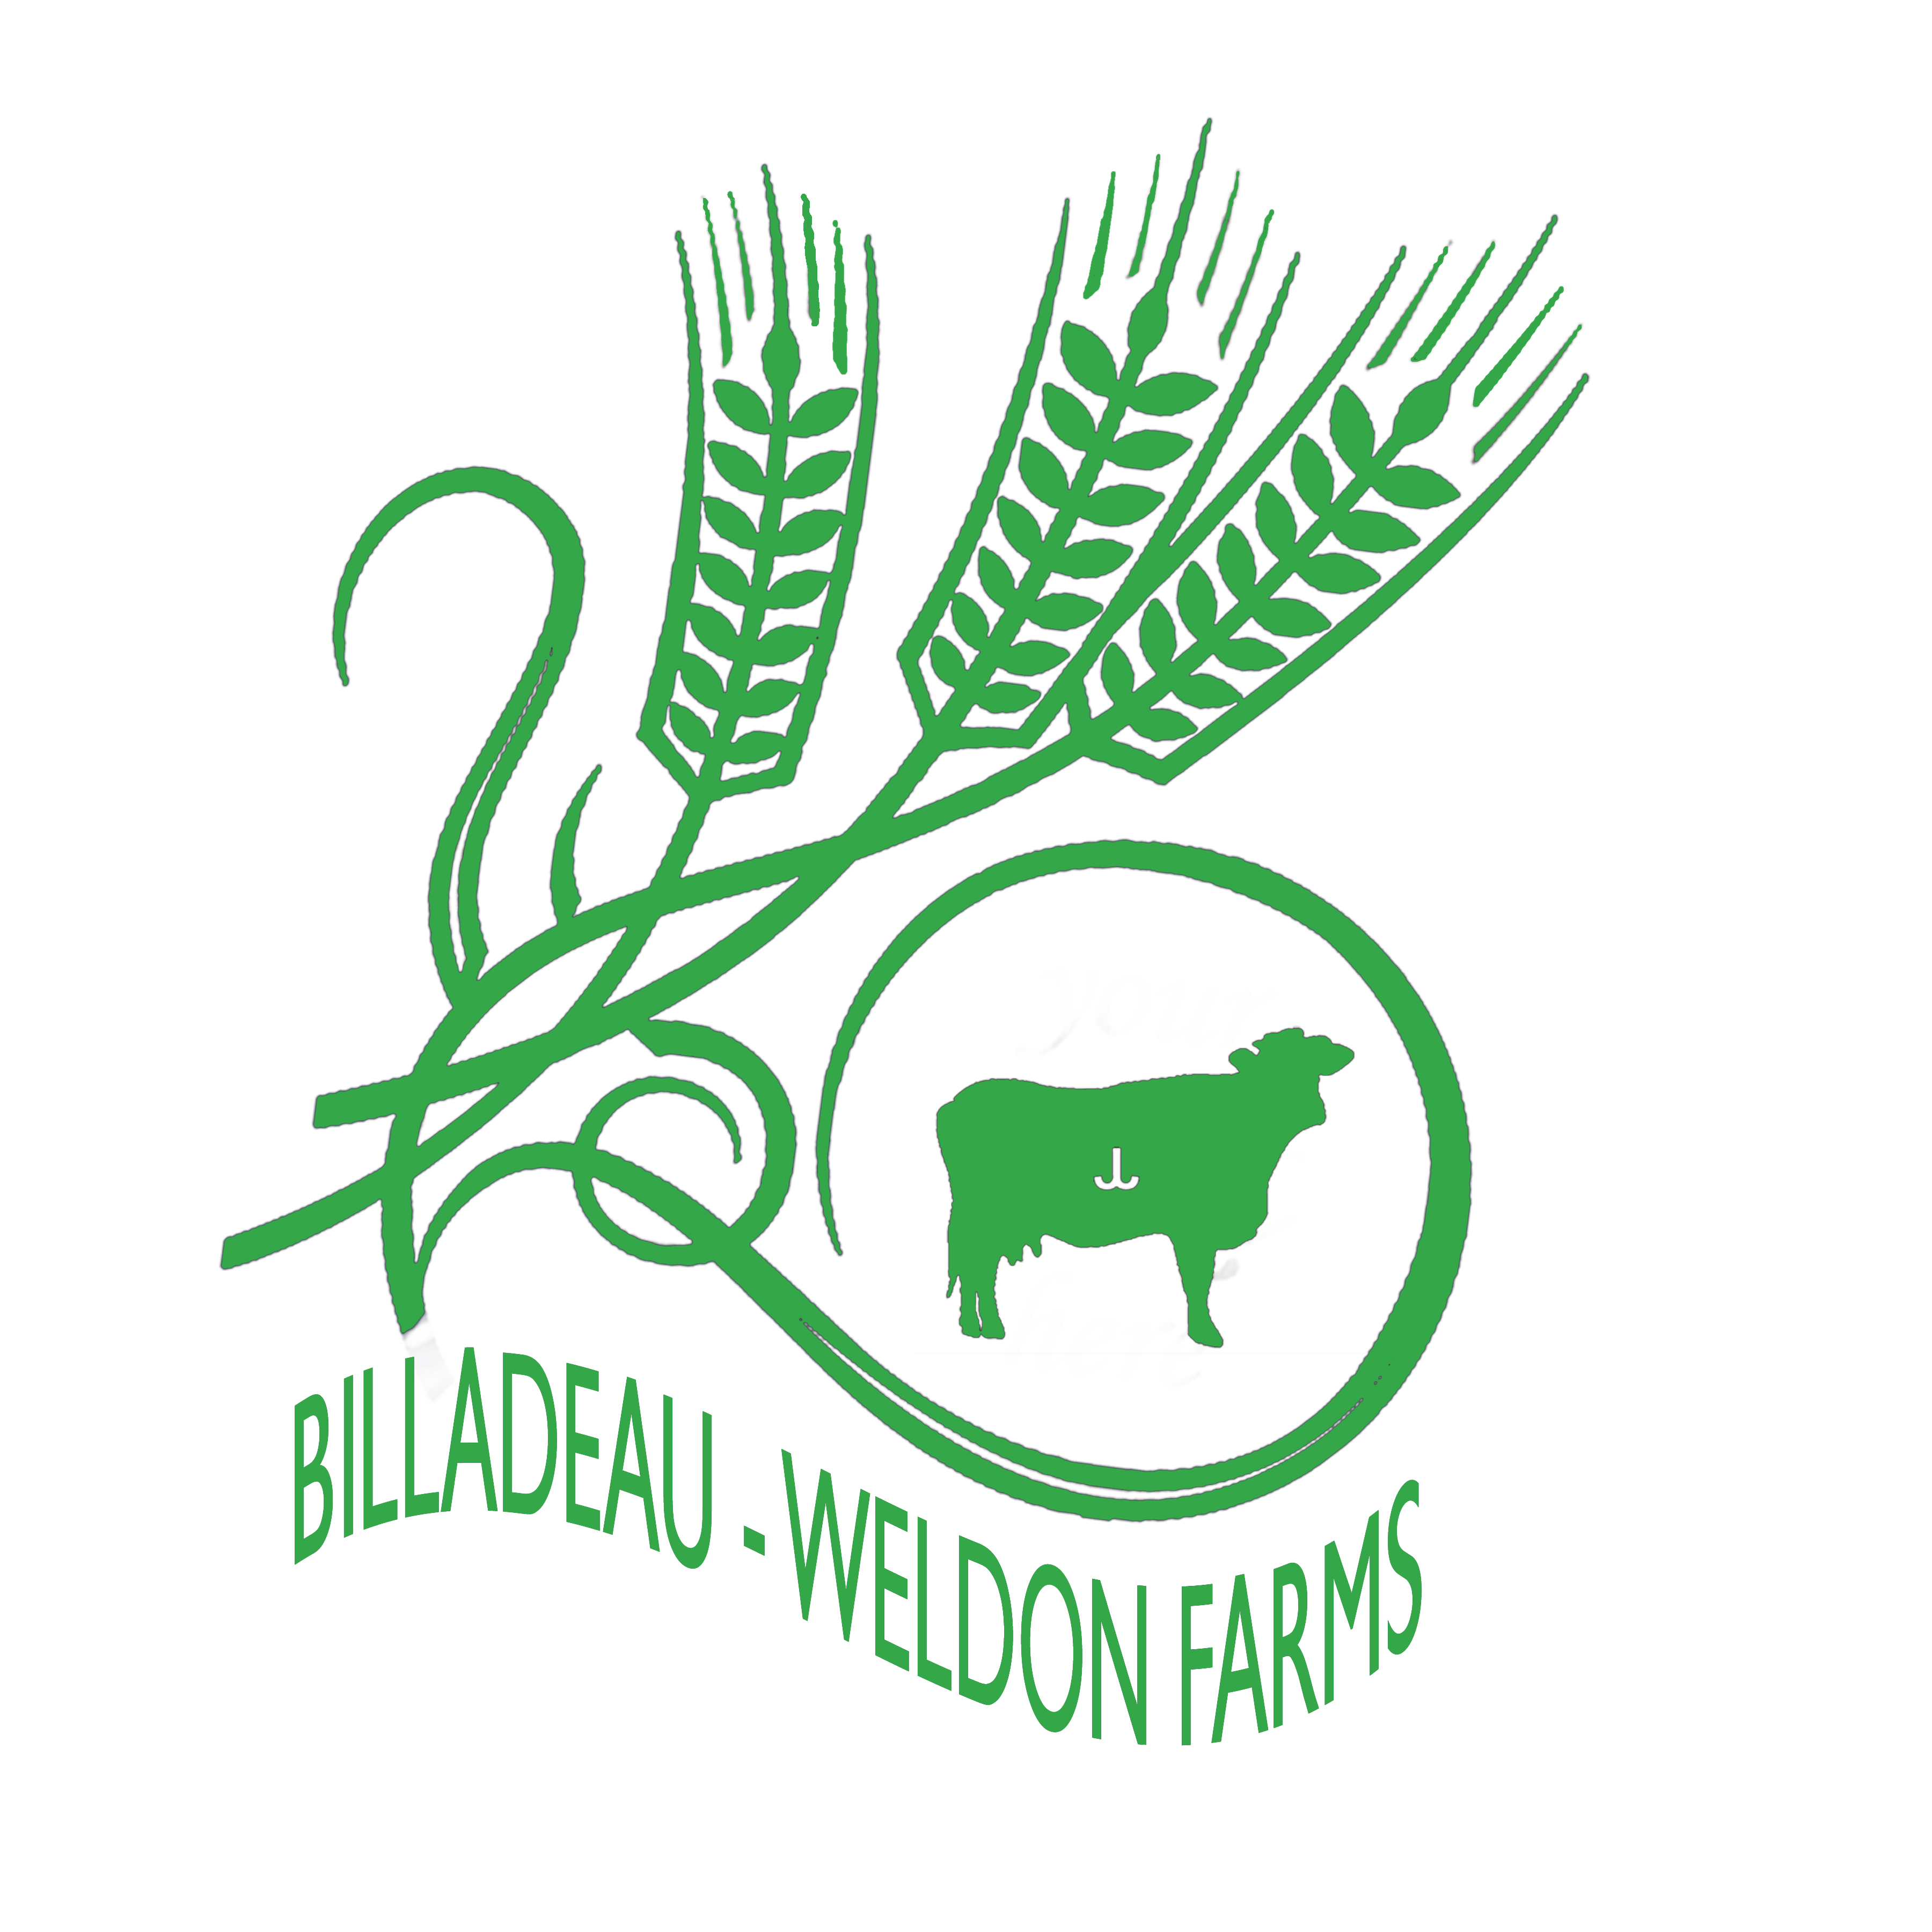 Billadeau/Weldon Farms